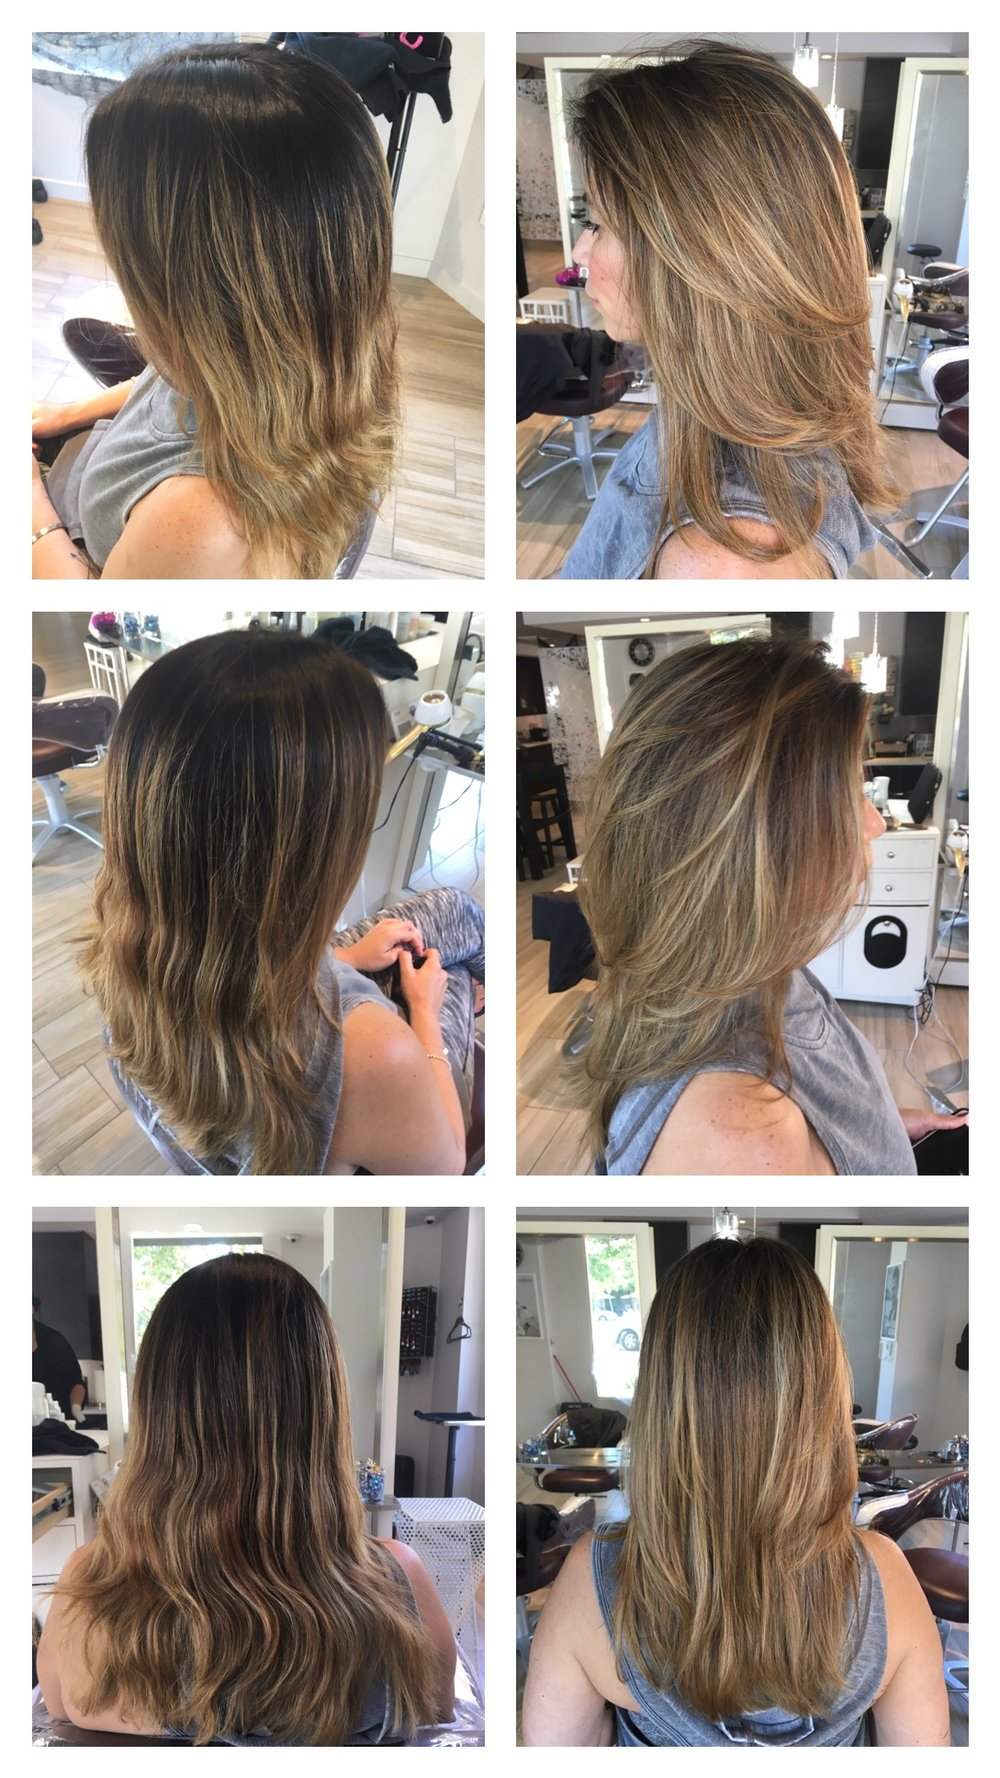 Haircut - Full Highlight and Tone